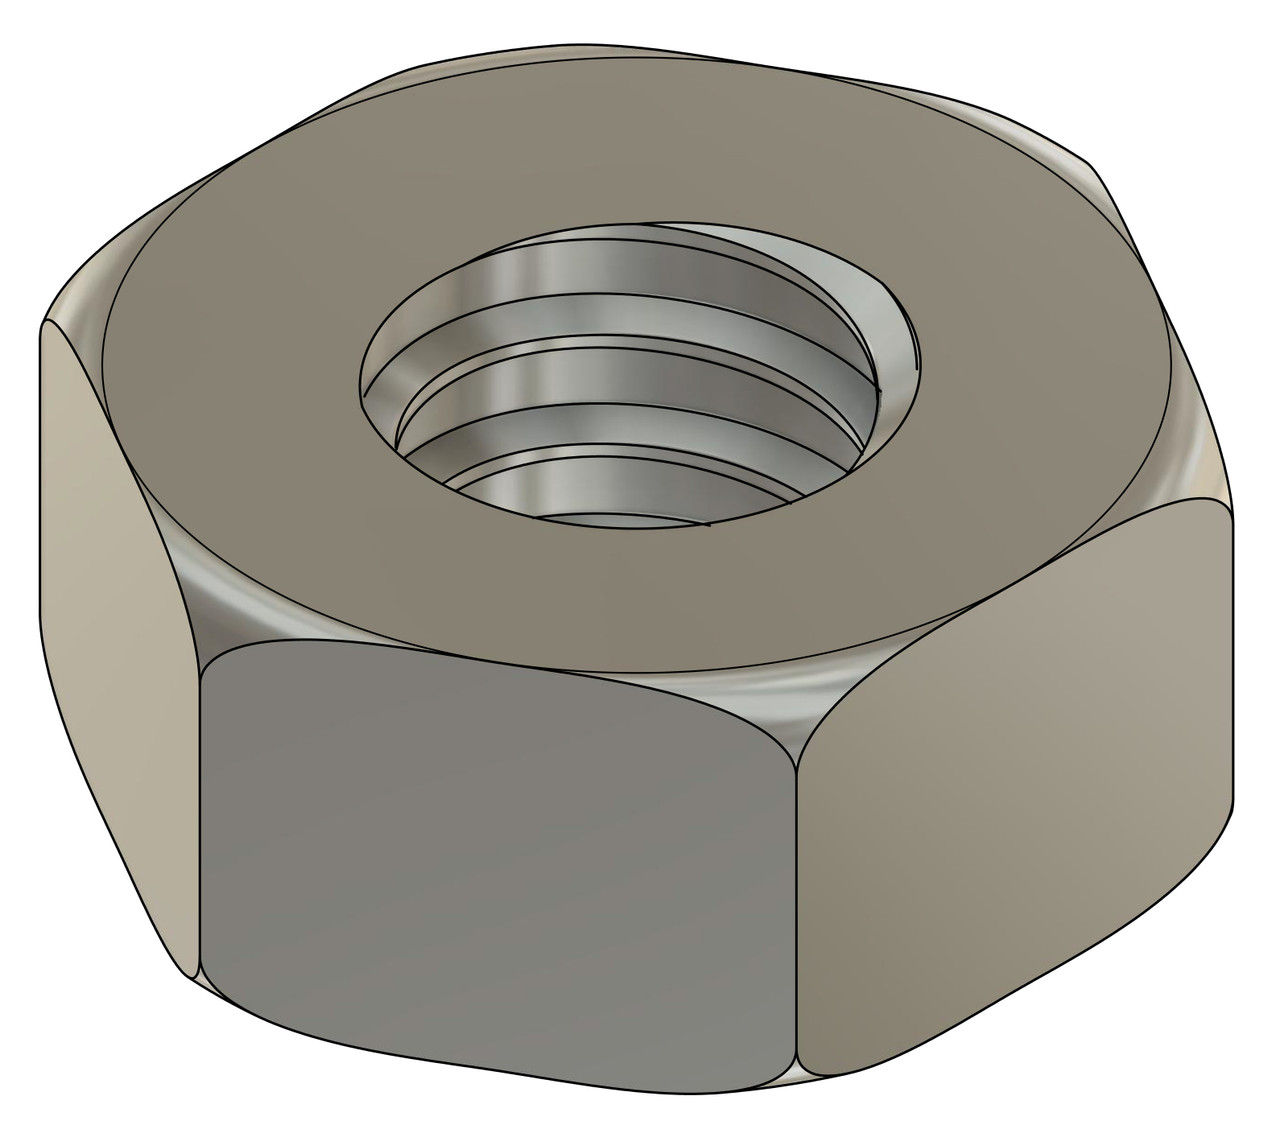 """Machined Hex Nut Thread 00-90 ACF 3/32"""" (across the flats) 2.25mm / .089"""" Thickness .041"""" / 1.05mm Material: Stainless Steel Part Color Finish is Silver Price is for 100 count package"""